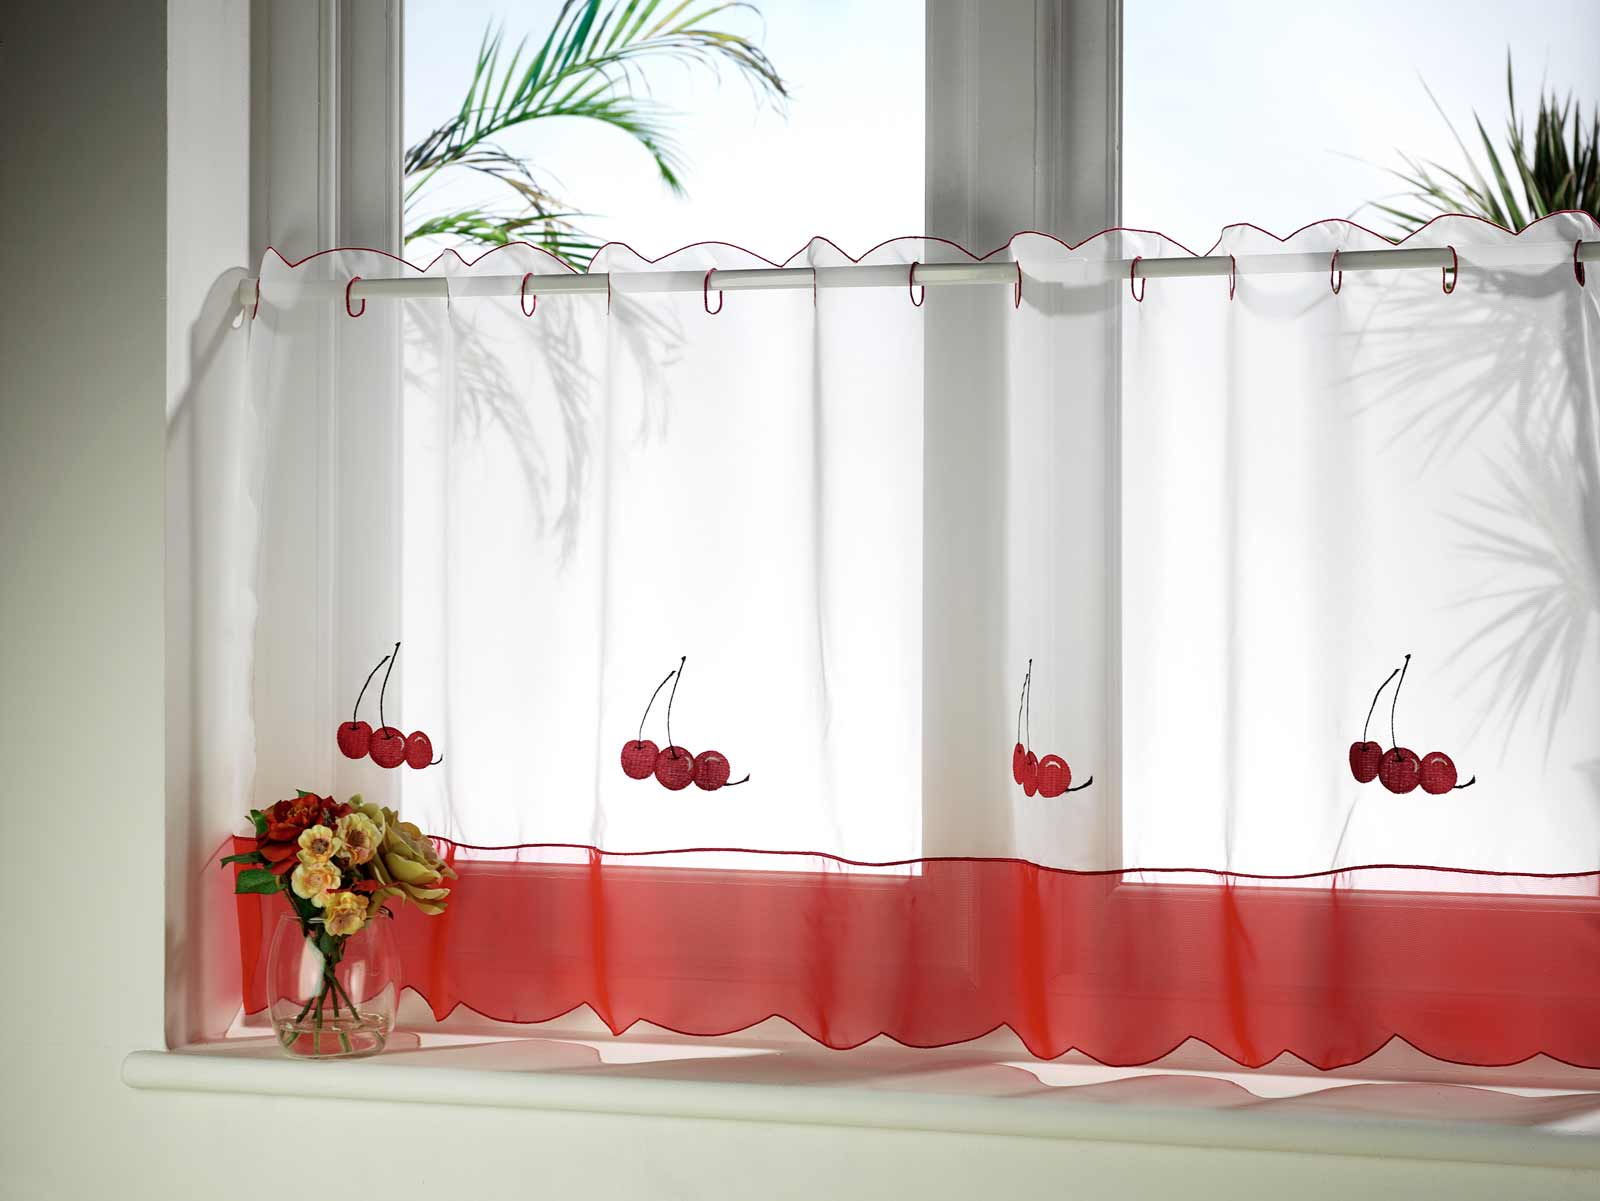 Cafe Curtain Rods - Best Window Treatments: from Curtains to Home